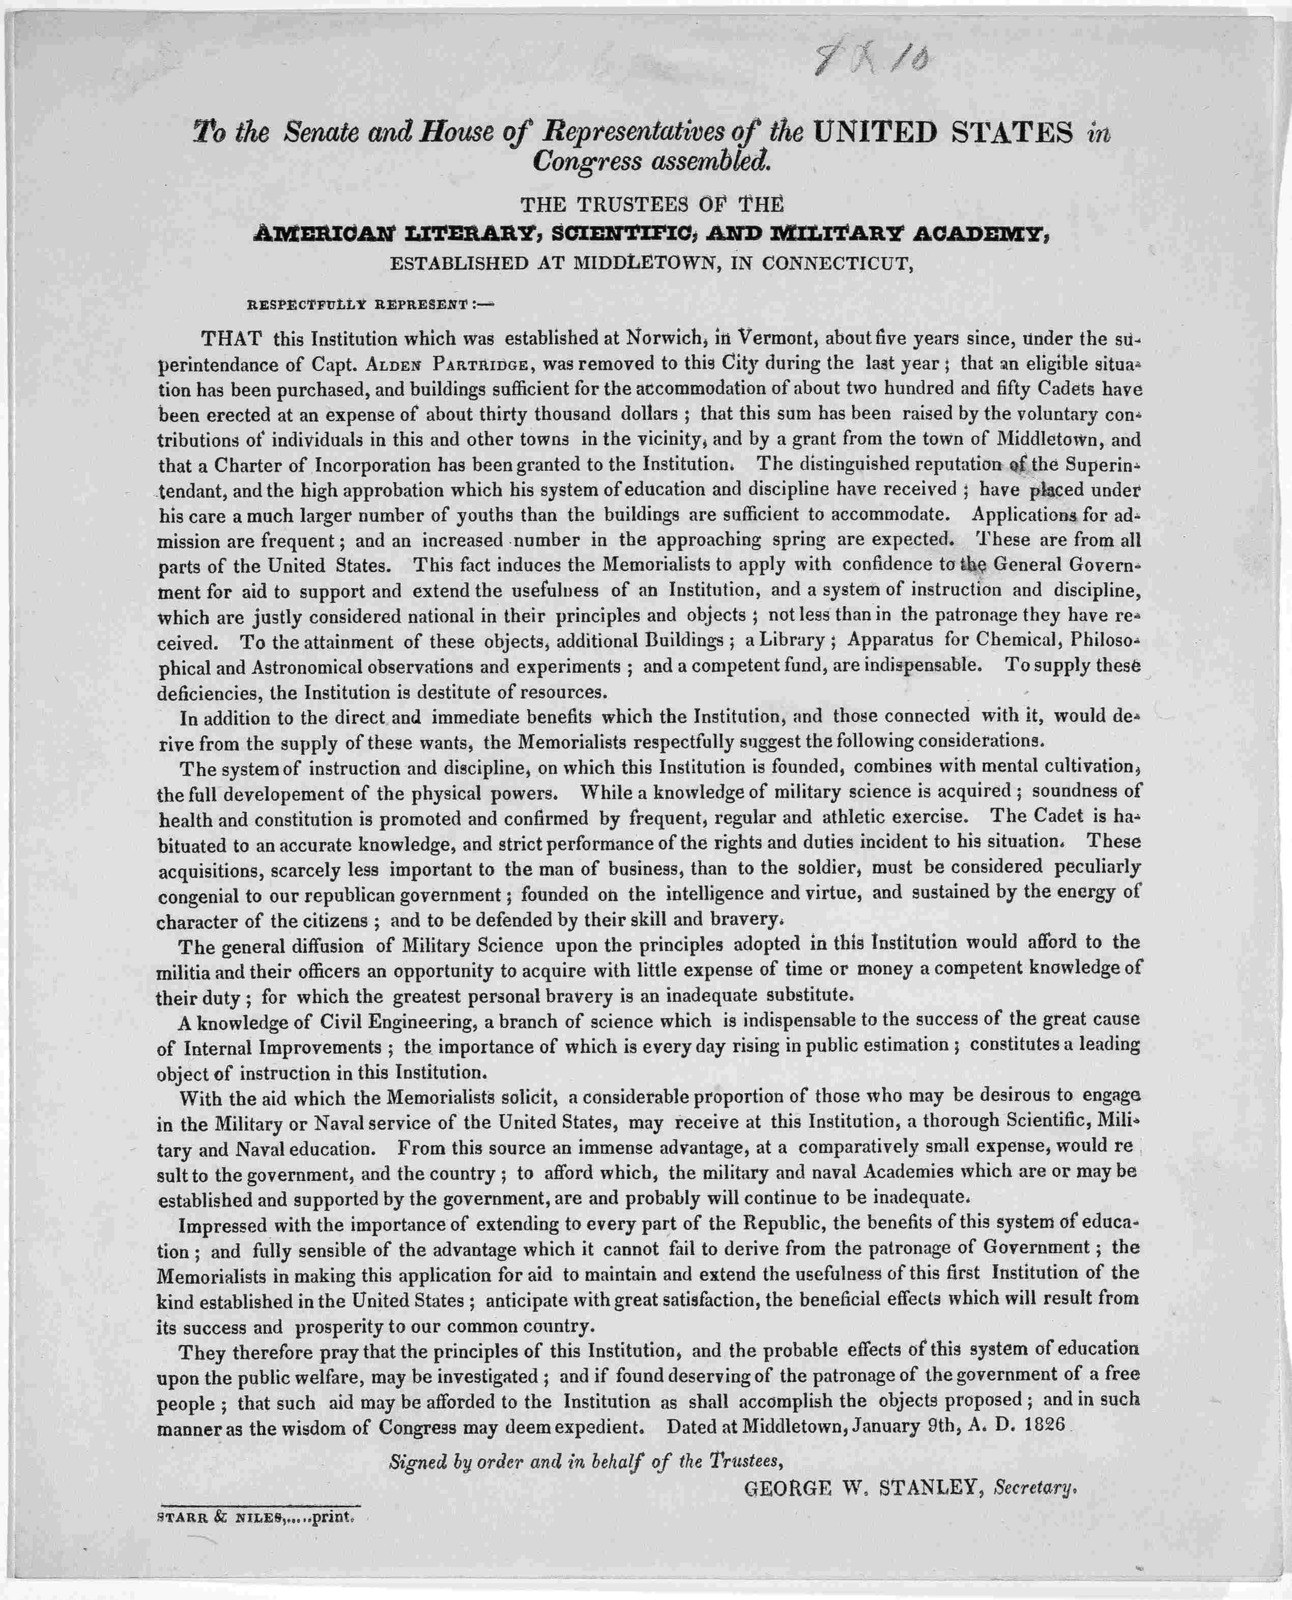 To the Senate and House of Representatives of the United States in Congress assembled. The trustees of the American literary, scientific and military academy established at Middletown, in Connecticut respectfully represent ... Signed by order an